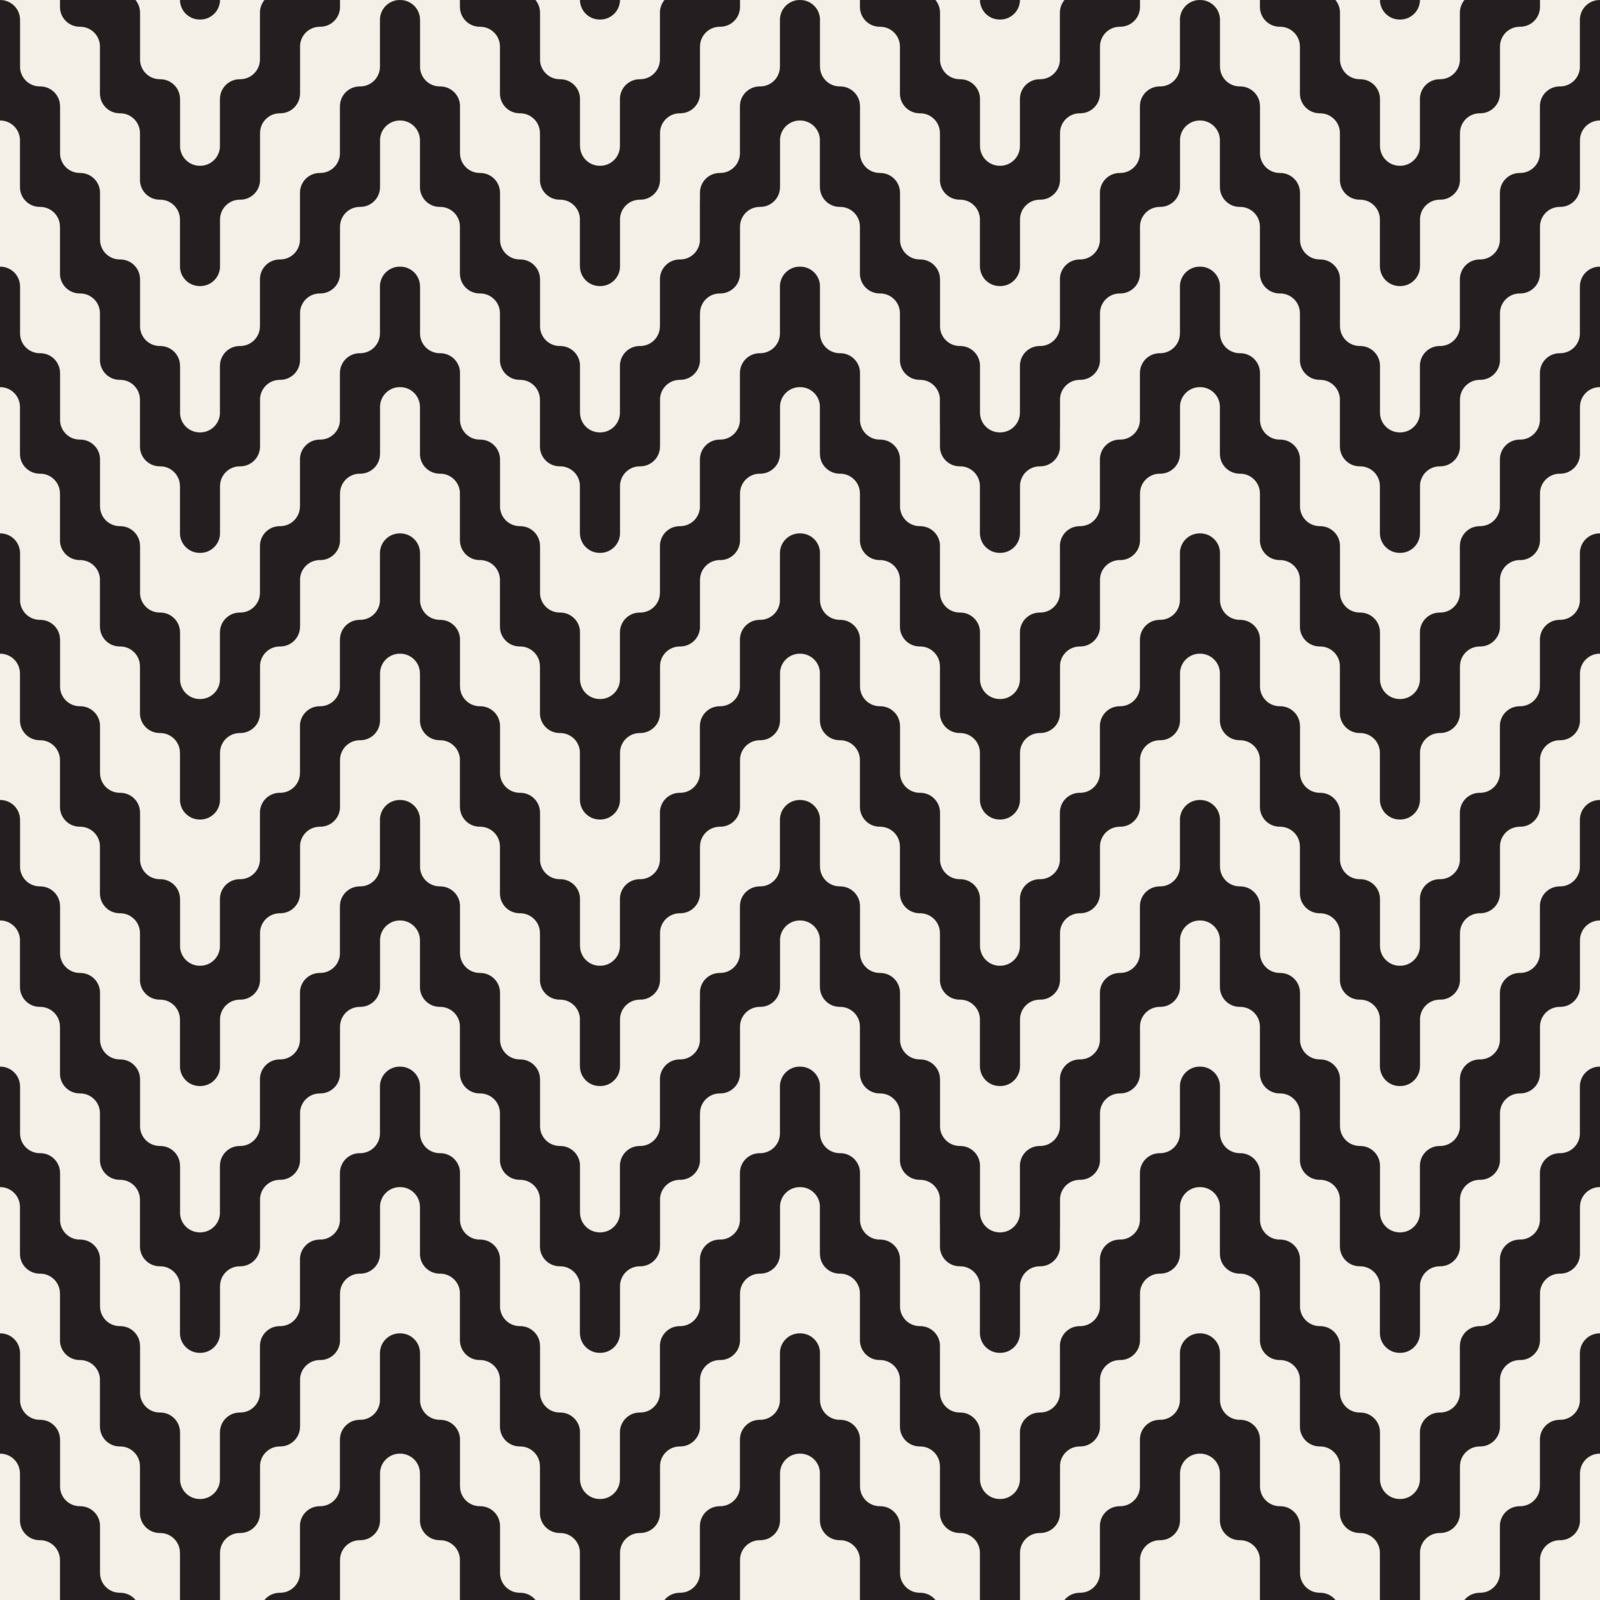 Vector Seamless Black and White ZigZag Jagged Lines Geometric Pattern. Abstract Geometric Background Design